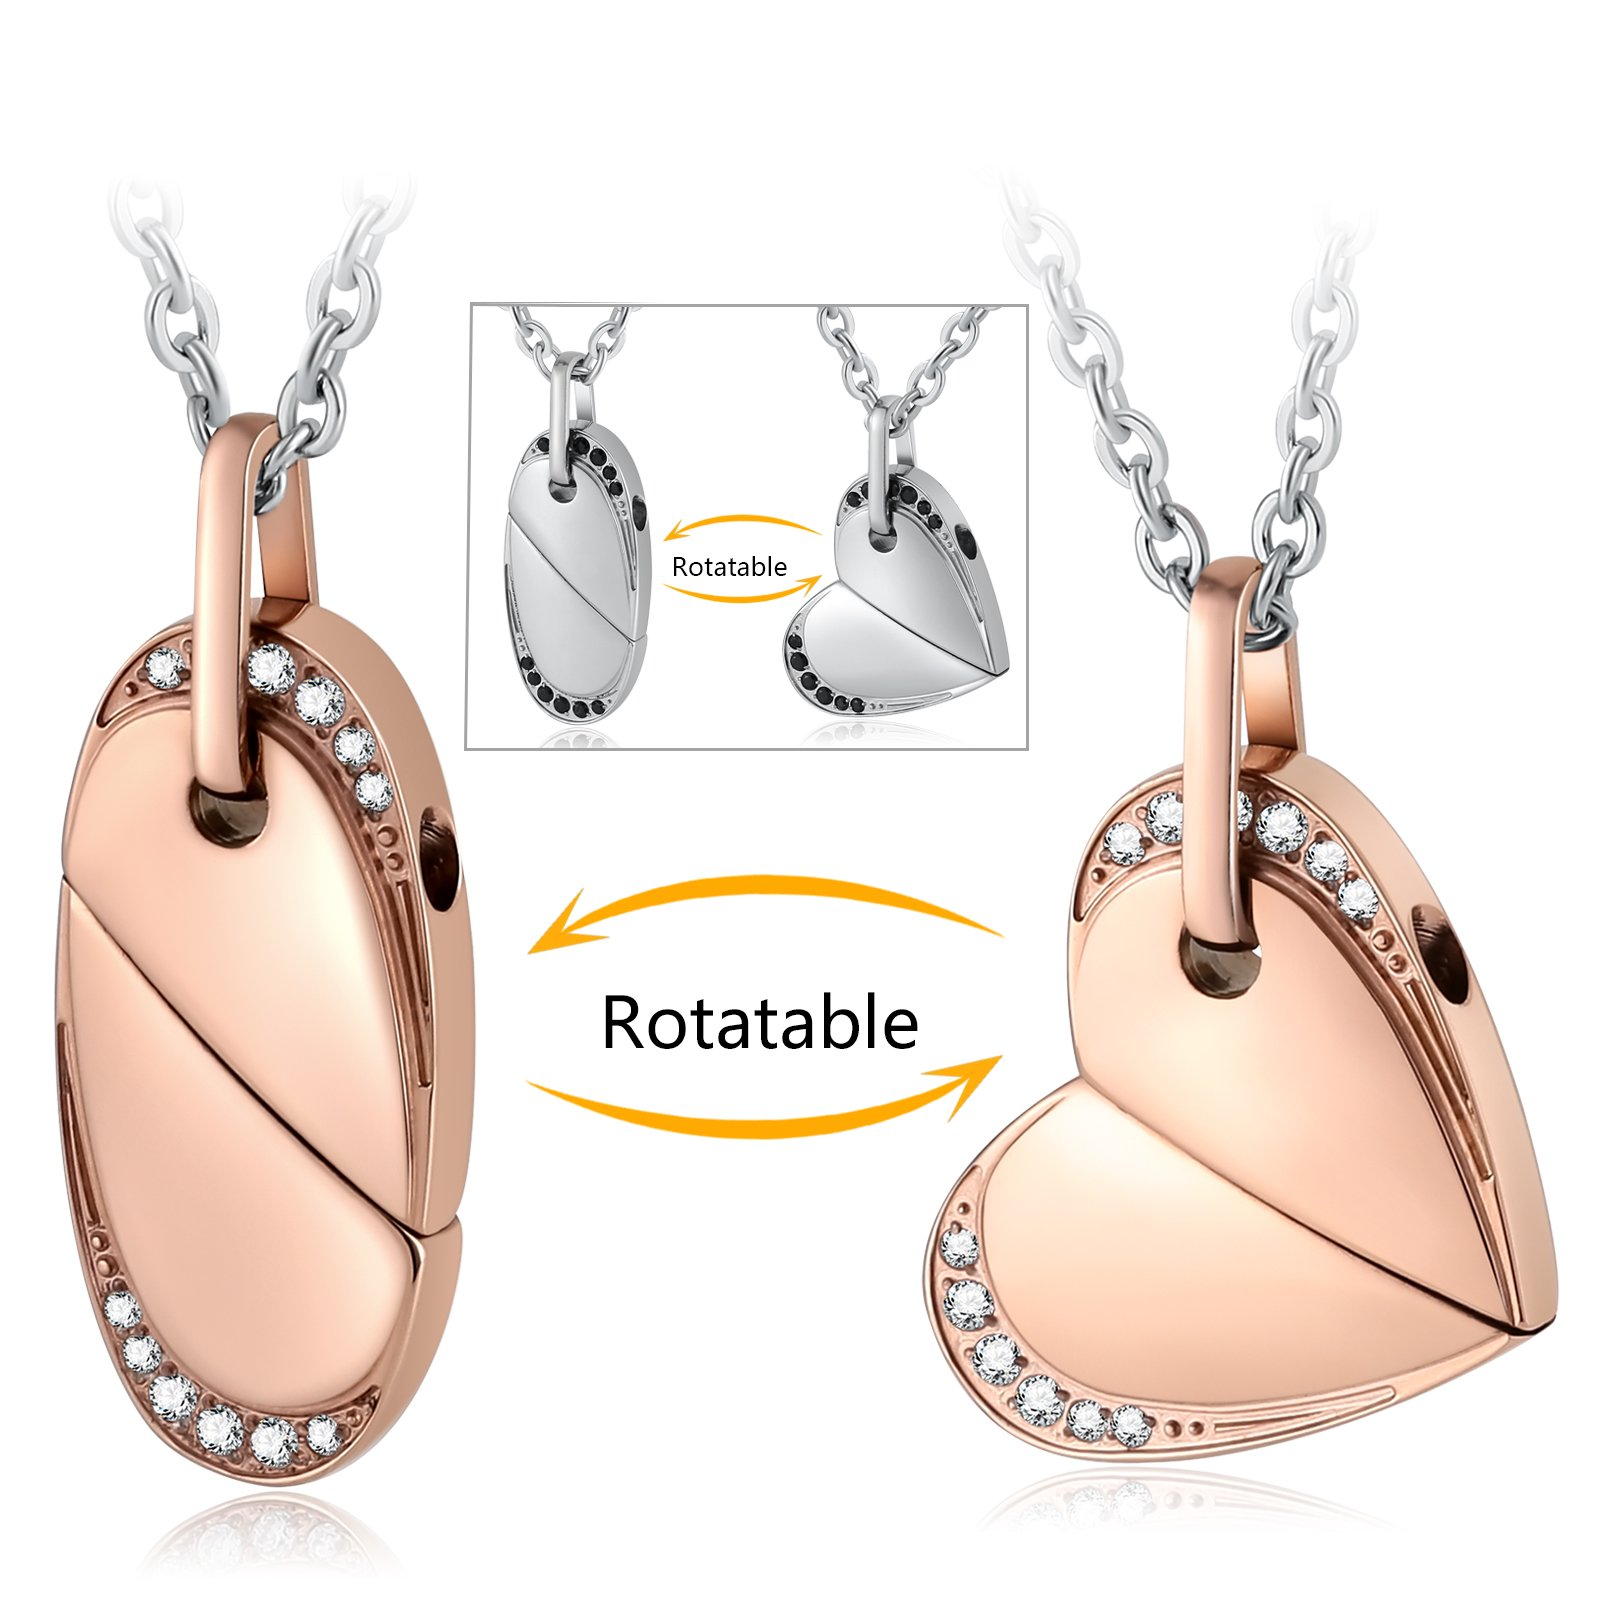 Aienid Stainless Steel Necklace for Couple Heart Move for You Rotatable Heart Pendant Necklace by Aienid (Image #3)